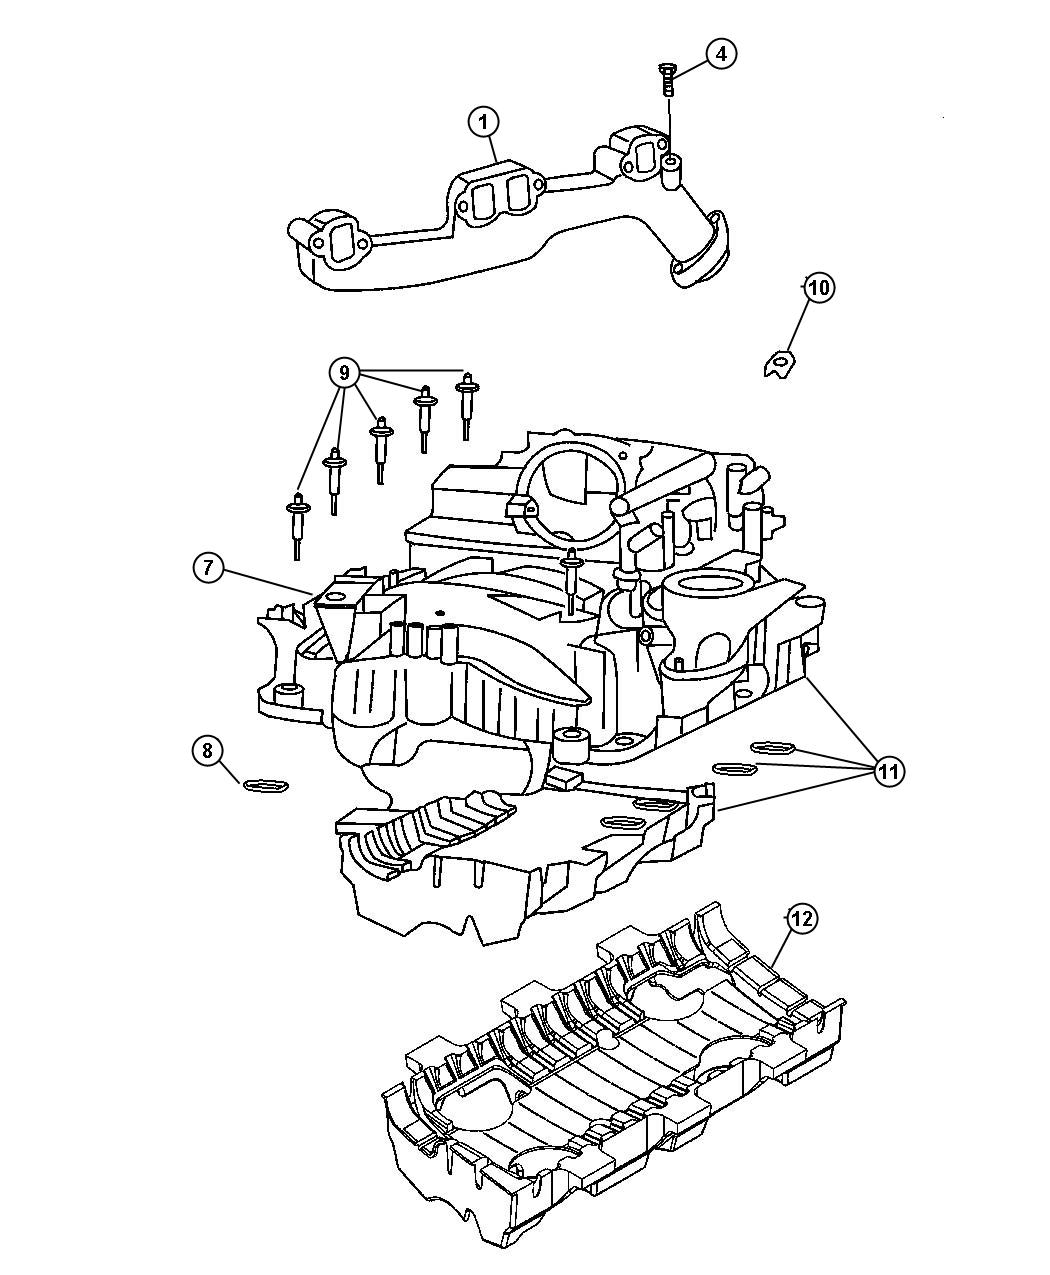 Dodge Ram Exhaust Diagram